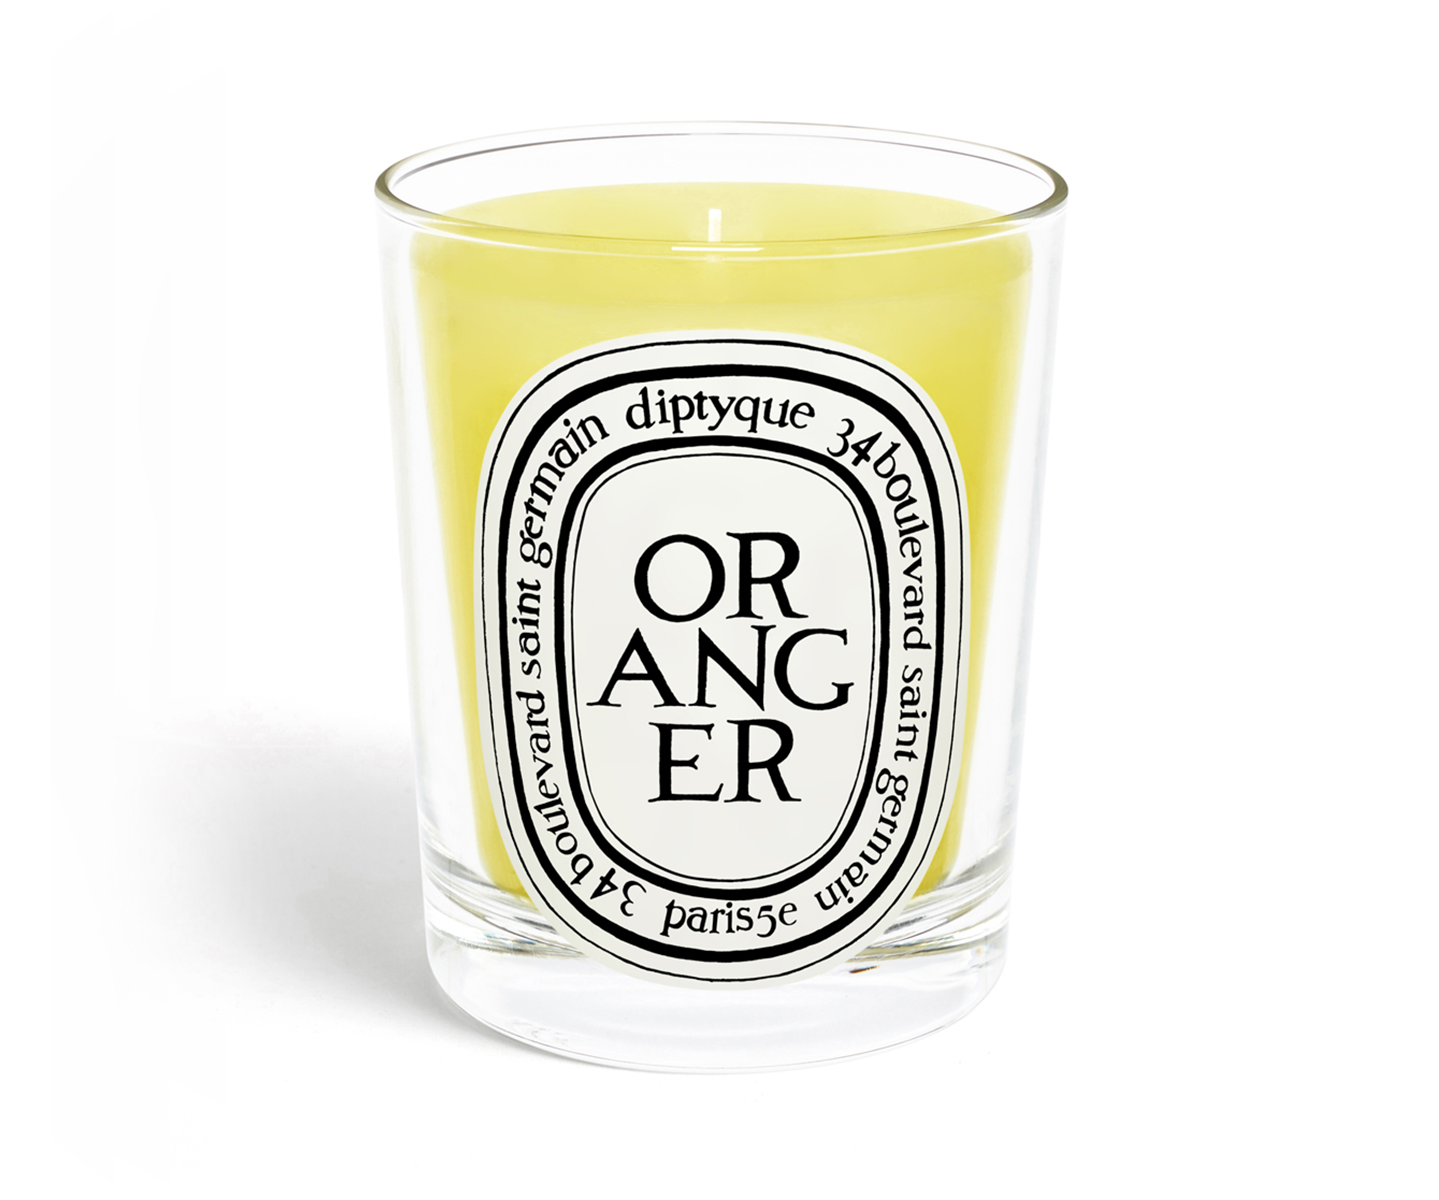 Oranger Orange Tree Candle Classic Scented Candles Diptyque Paris